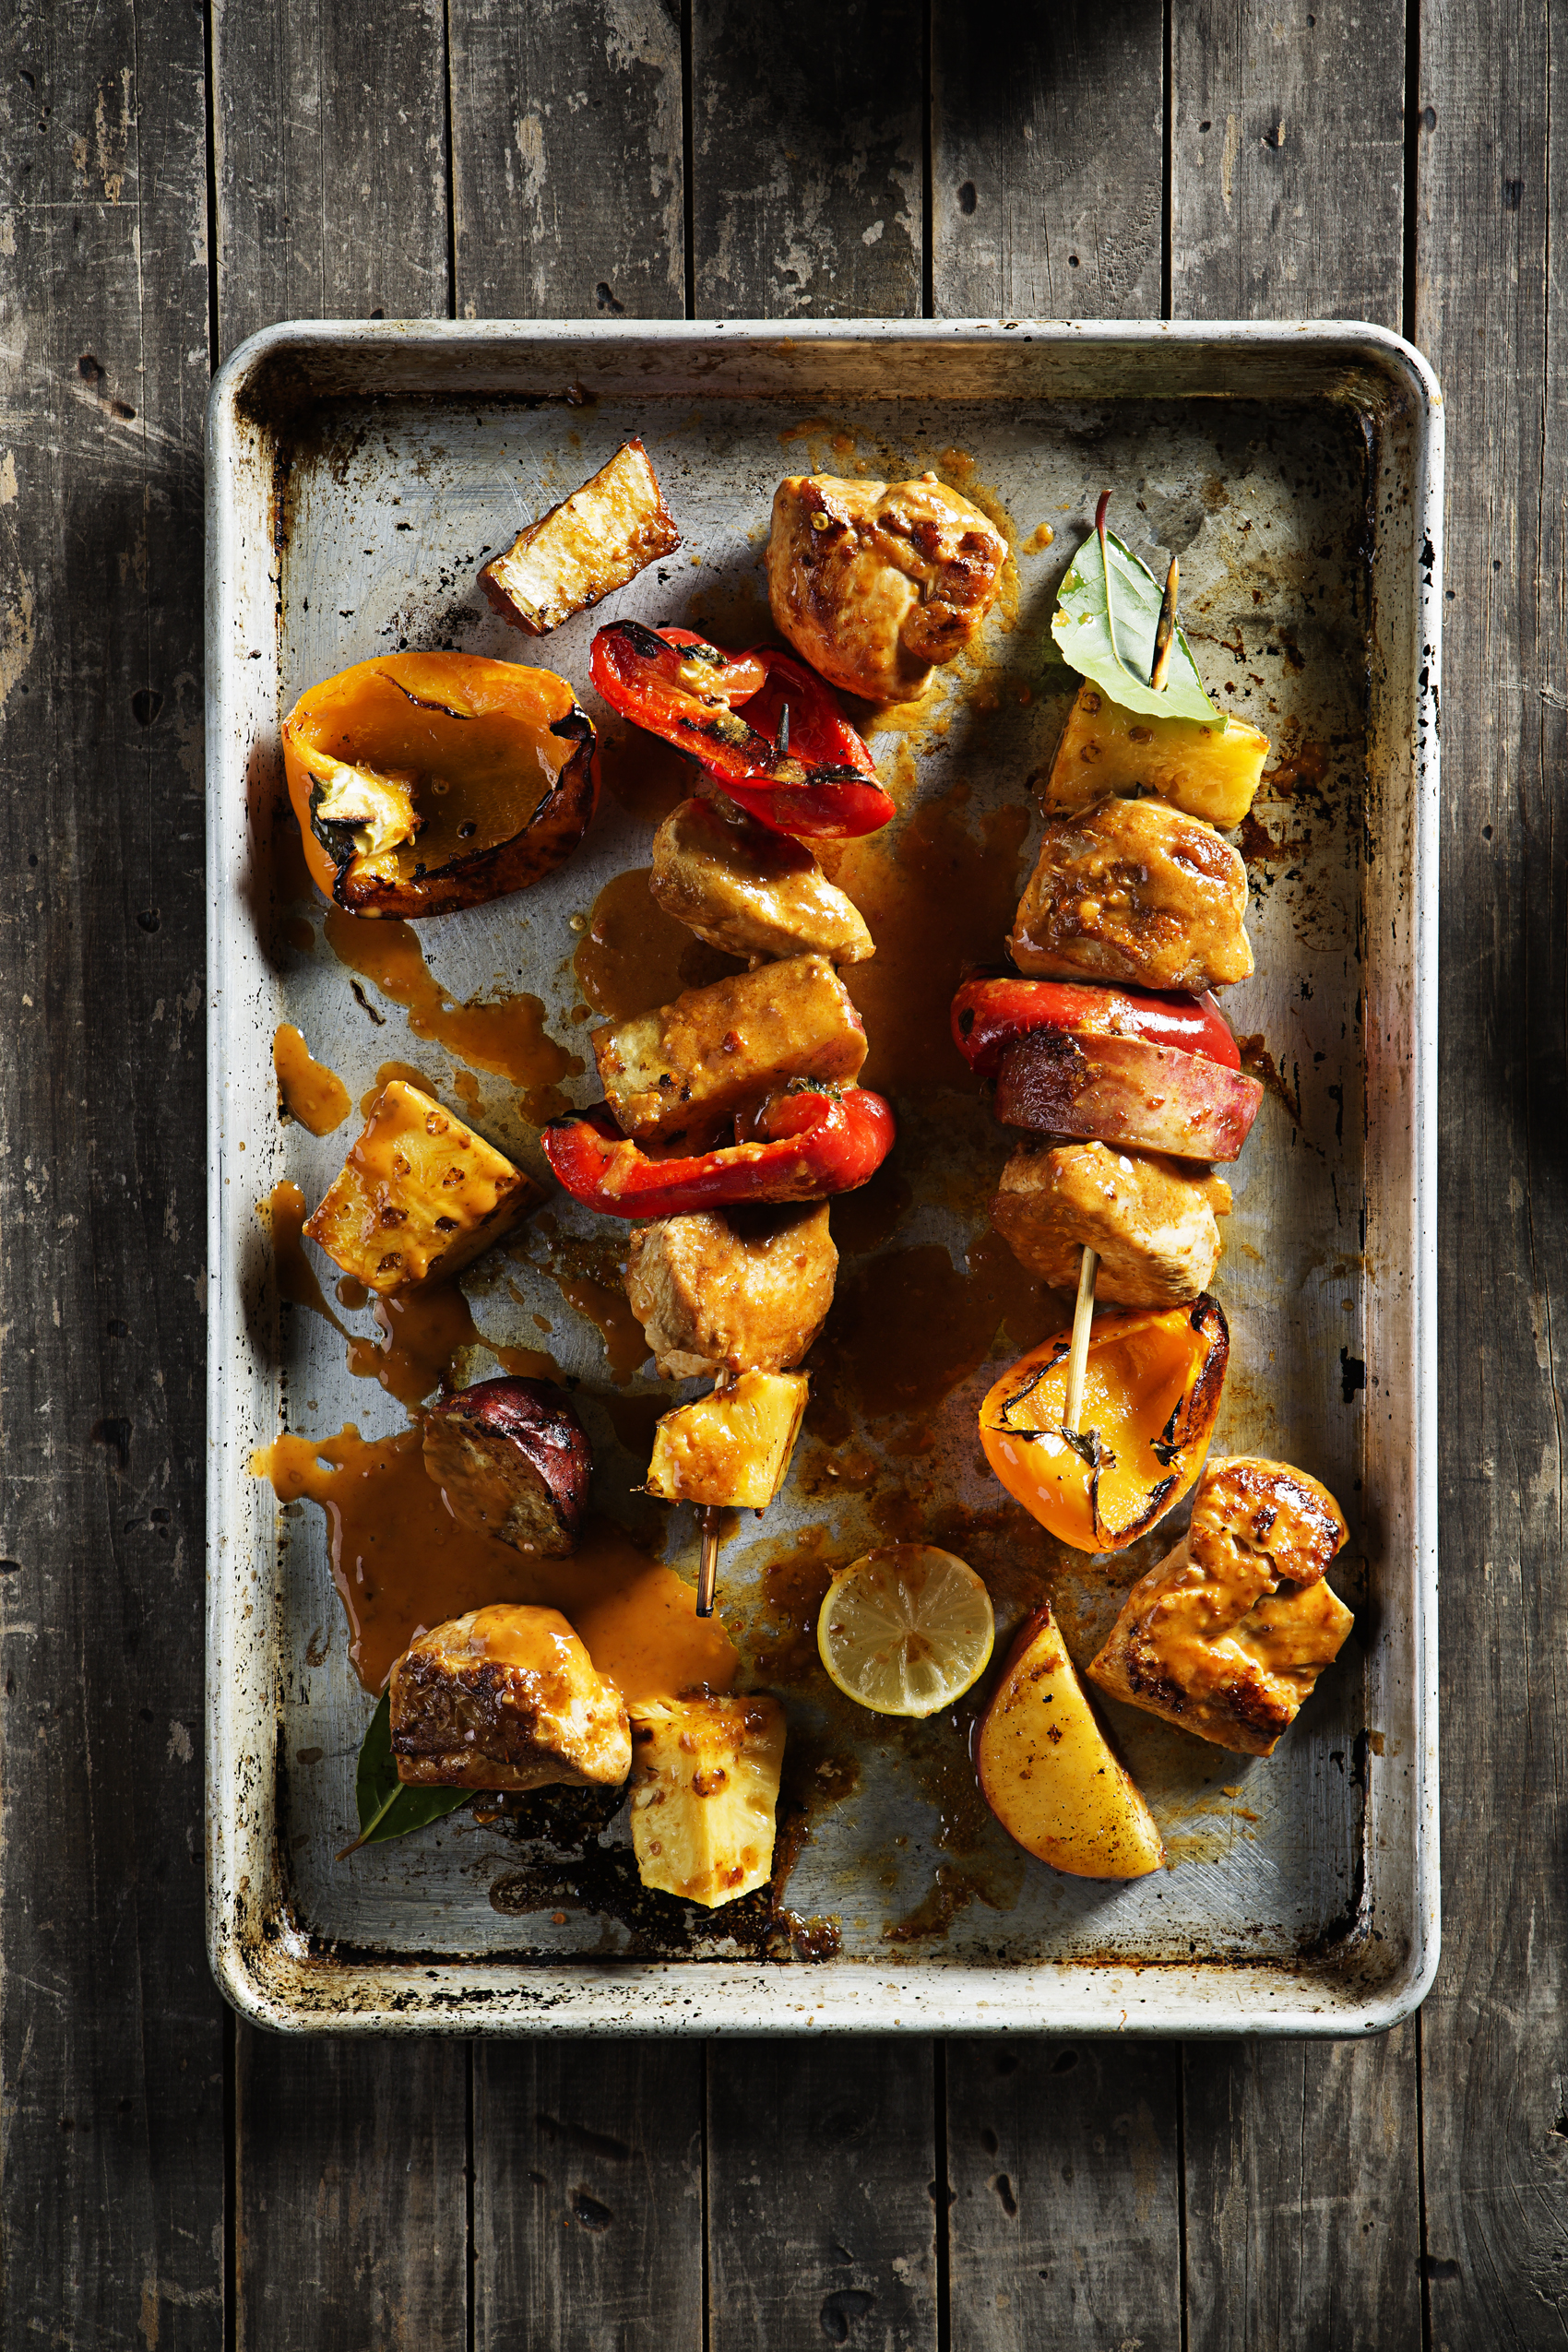 Chicken, pineapple kebabs